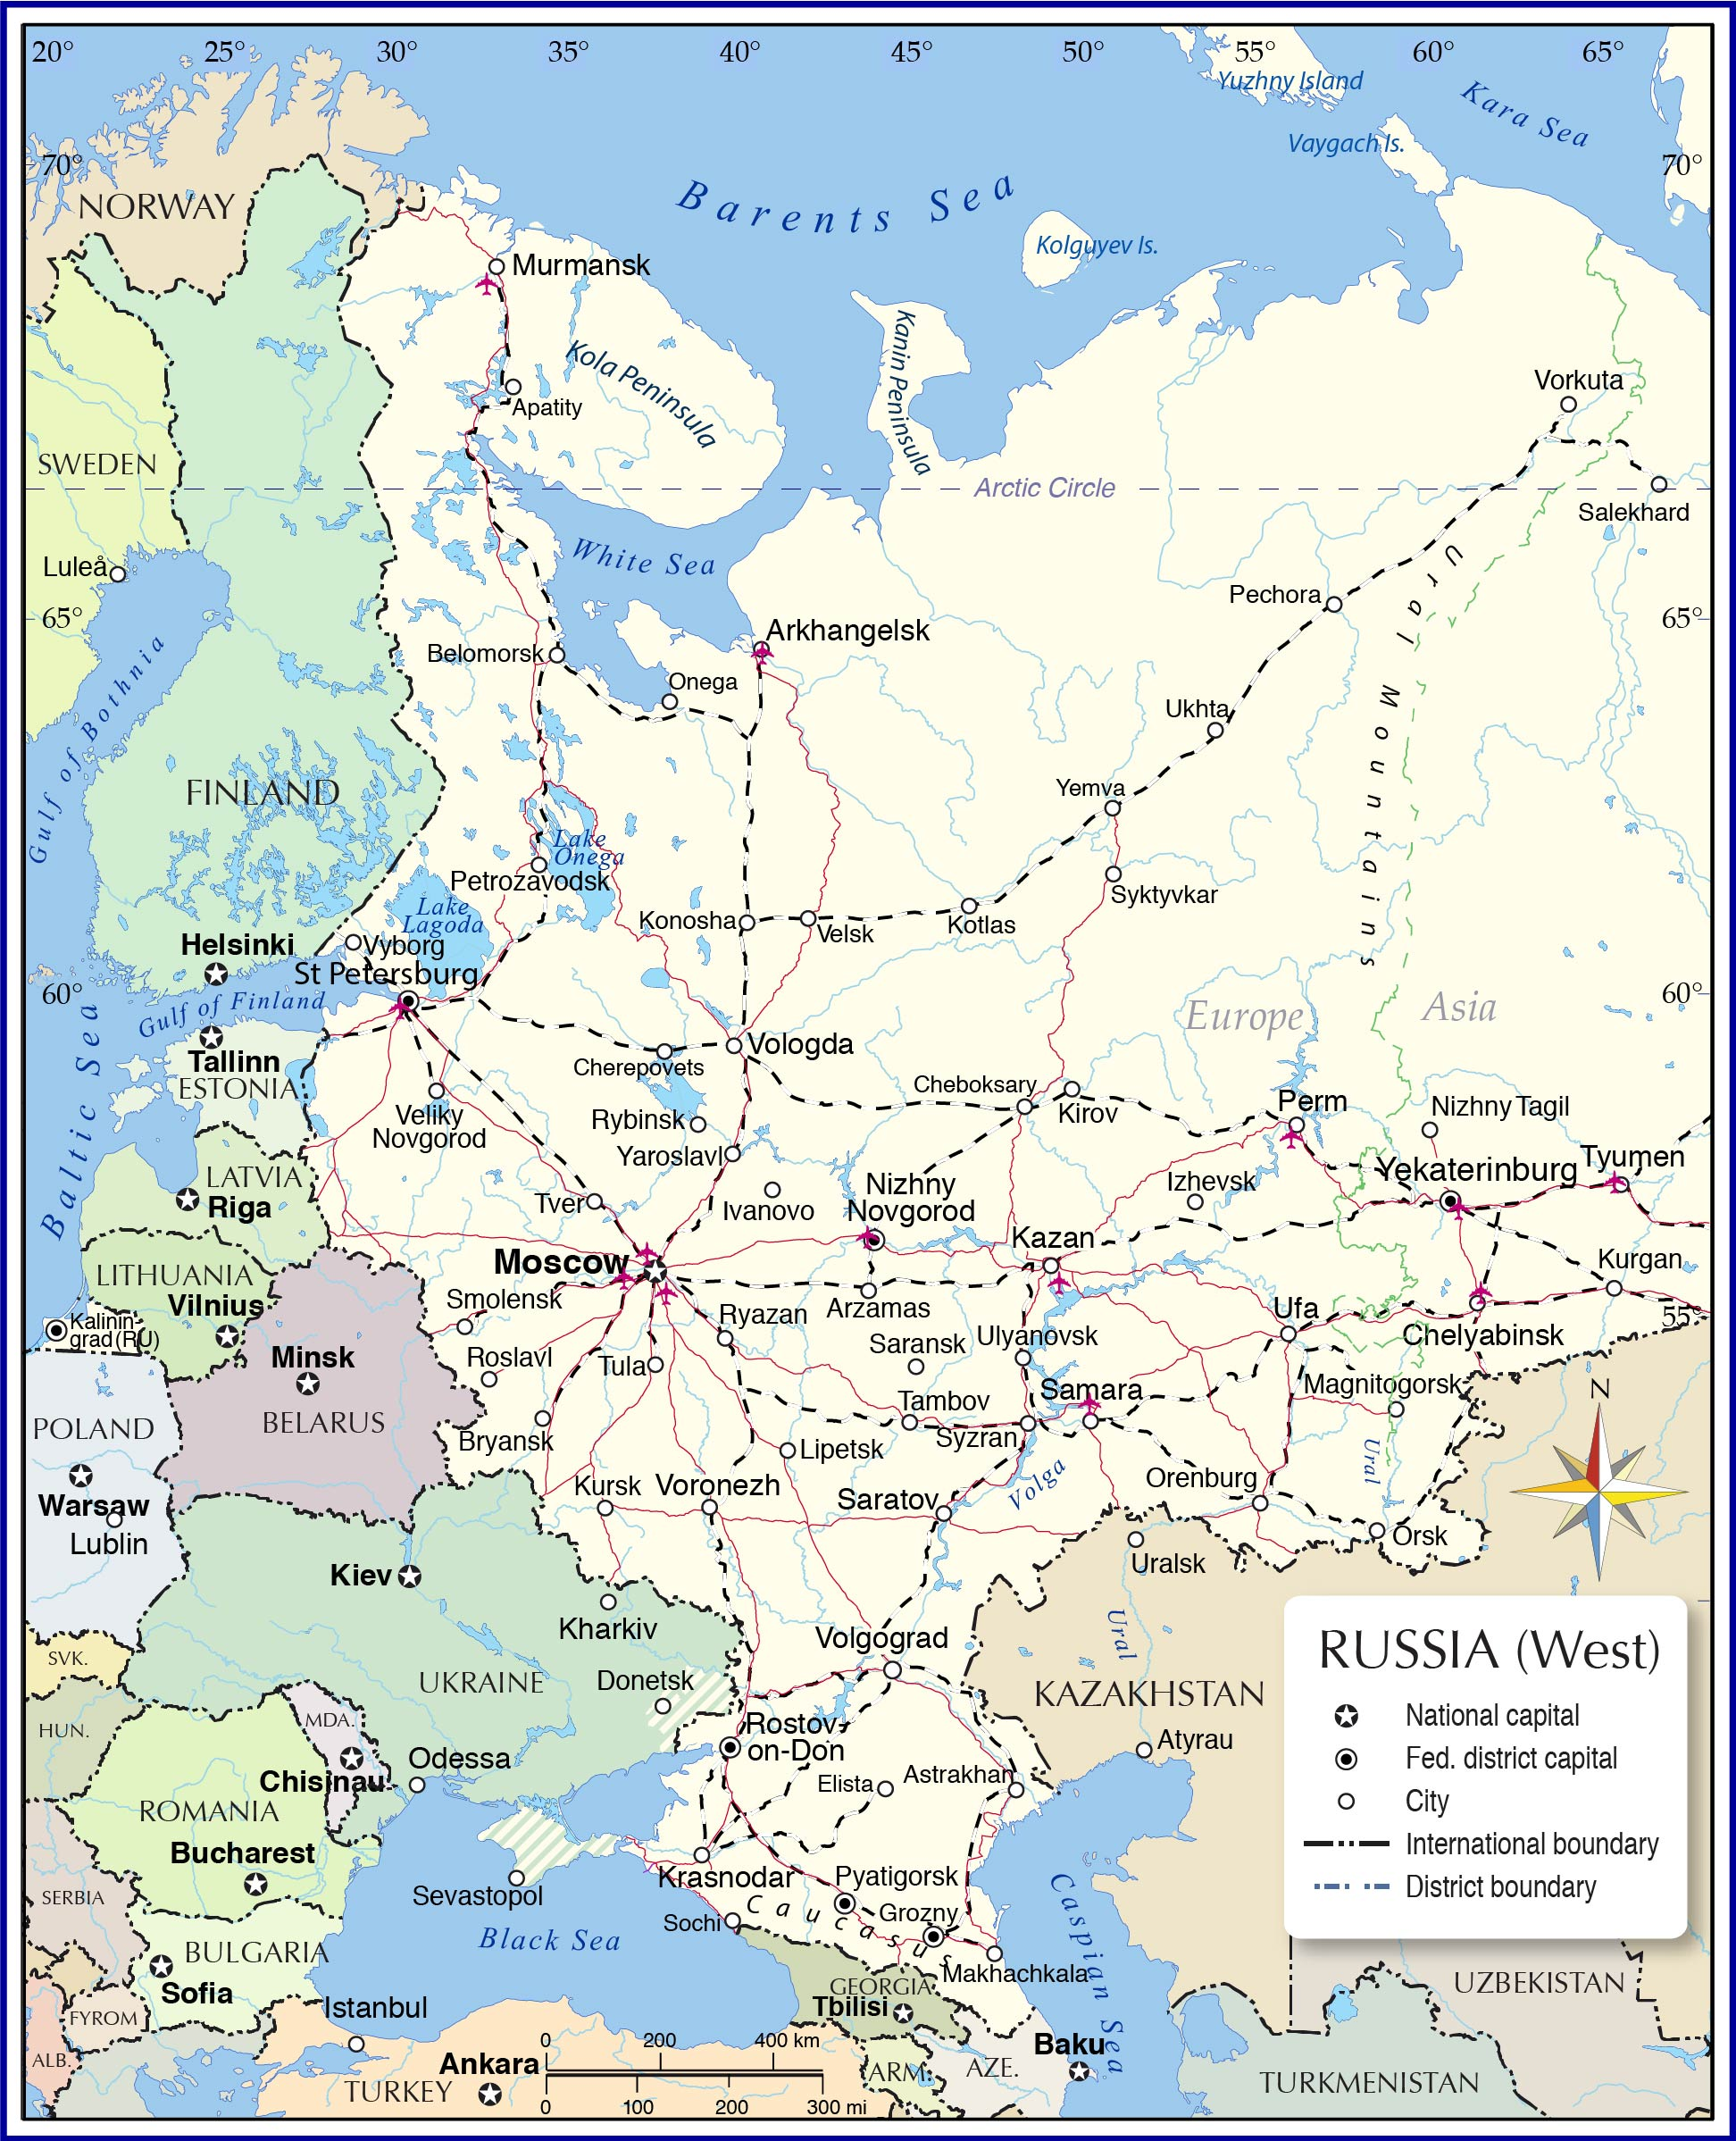 Map of European Russia - Nations Online Project Map Kazan Russia on tynda russia map, volsk russia map, serpukhov russia map, volga river, ufa russia map, tatarstan russia map, elista russia map, vladivostok map, tula russia map, markovo russia map, grozny russia map, novgorod russia map, yurga russia map, bashkiria russia map, saint petersburg, crimea russia map, samara russia map, nizhny novgorod, warsaw russia map, yaroslavl russia map, irkutsk map, moscow map, astrakhan russia map,